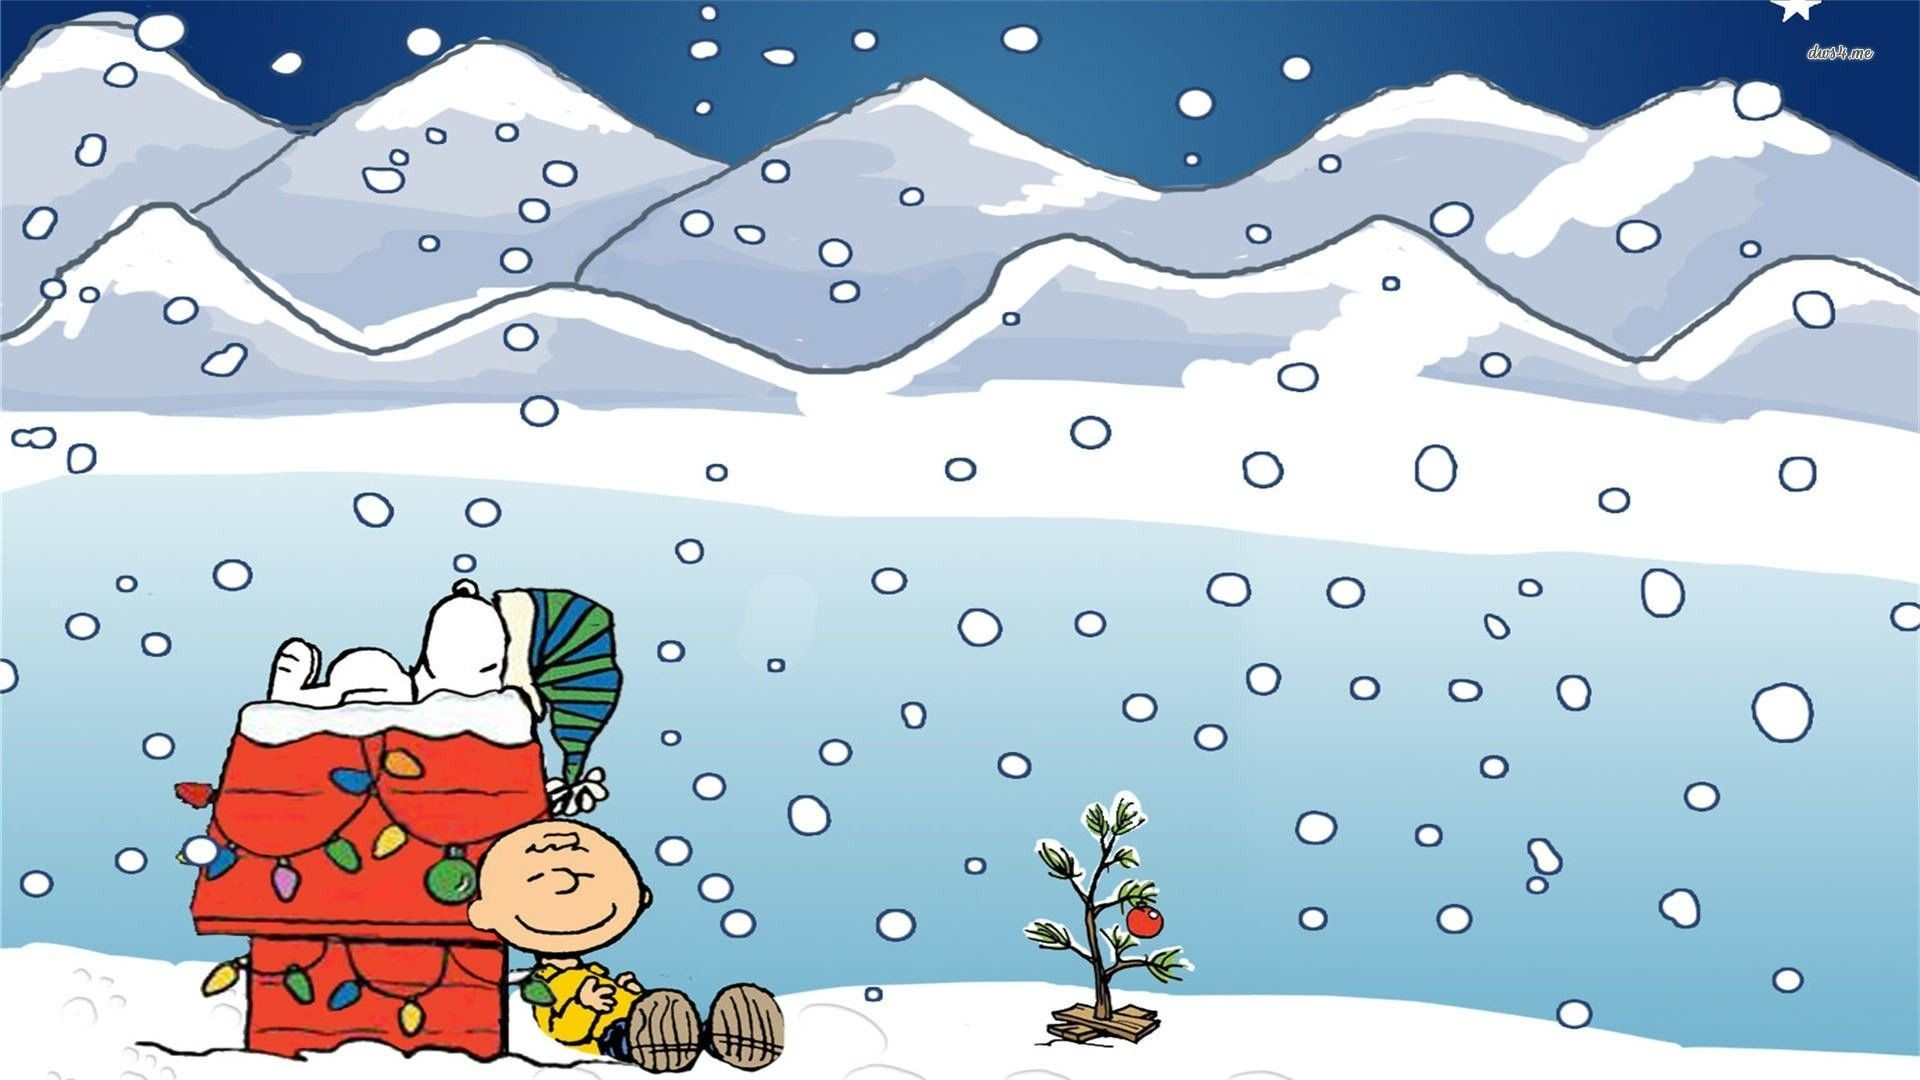 Charlie Brown and Snoopy wallpaper – Cartoon wallpapers – #12189